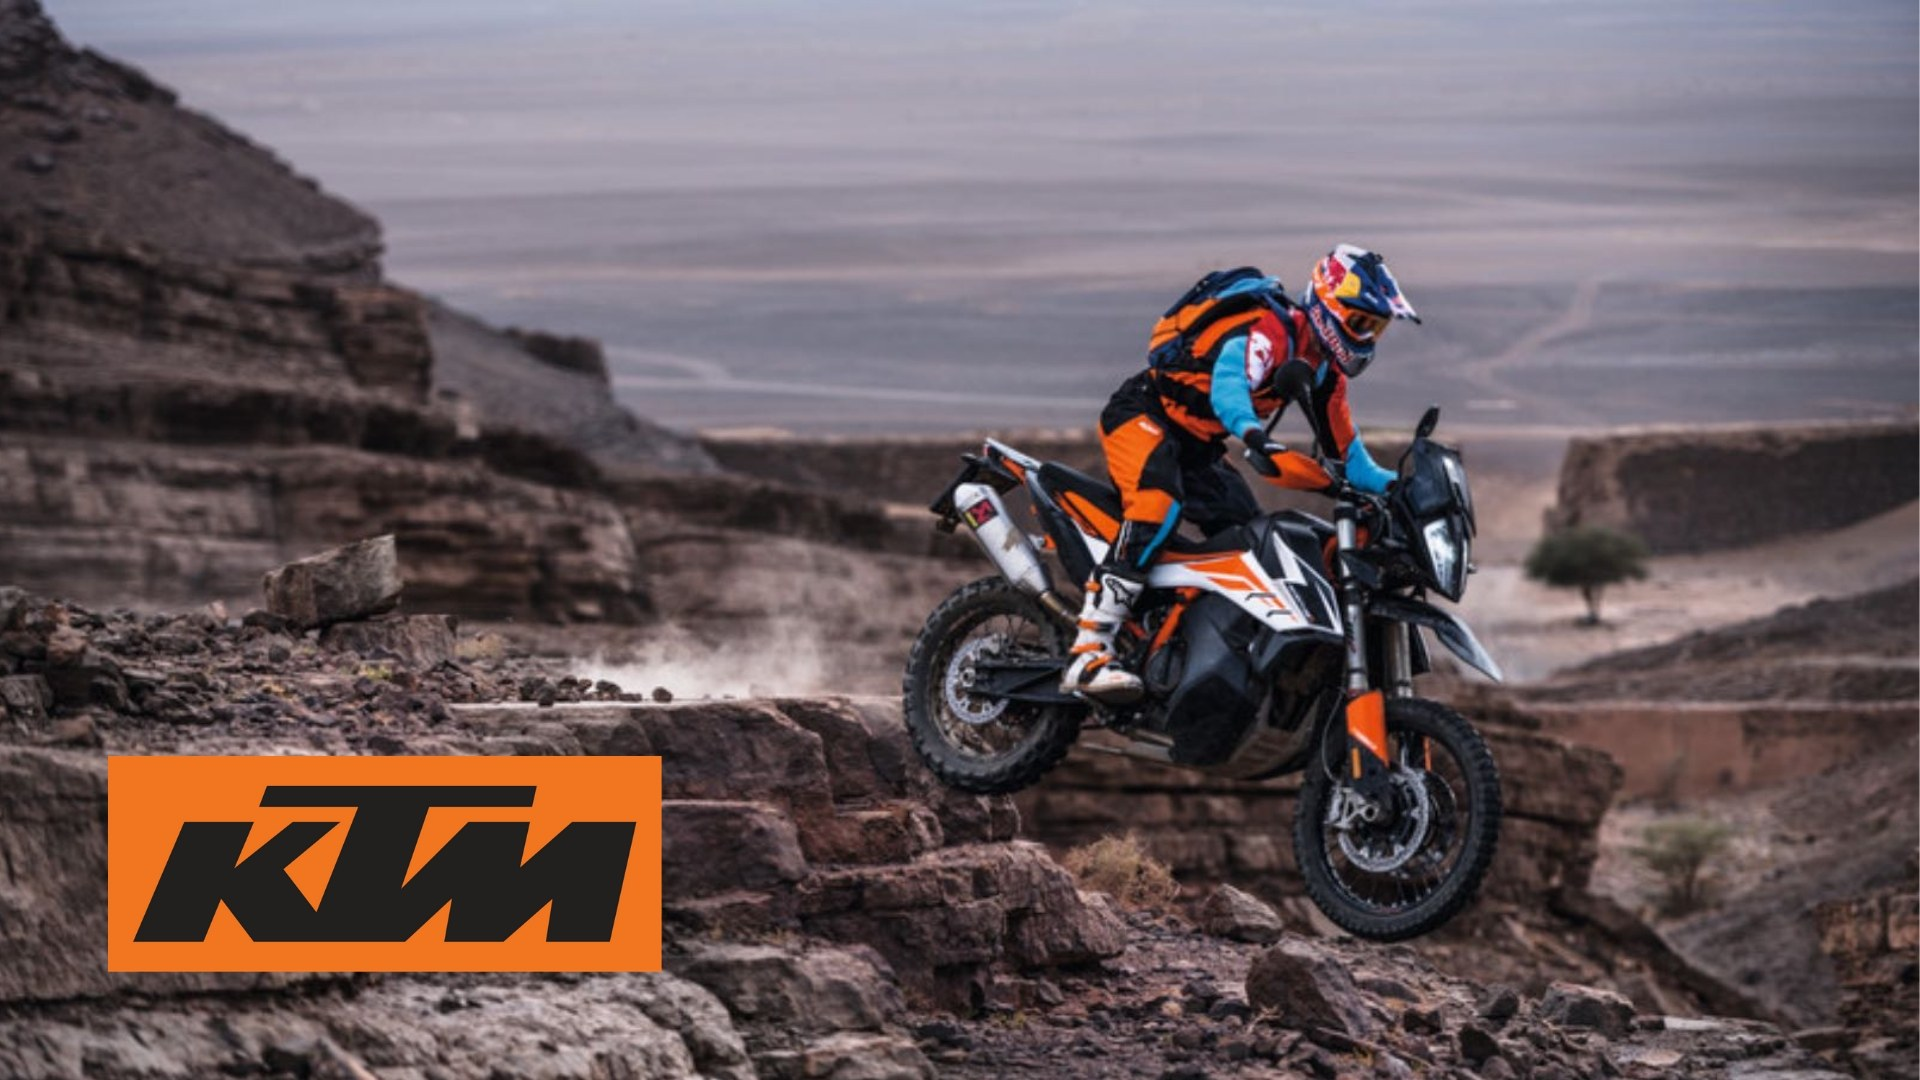 Schedule your Ride on a new 2019 KTM